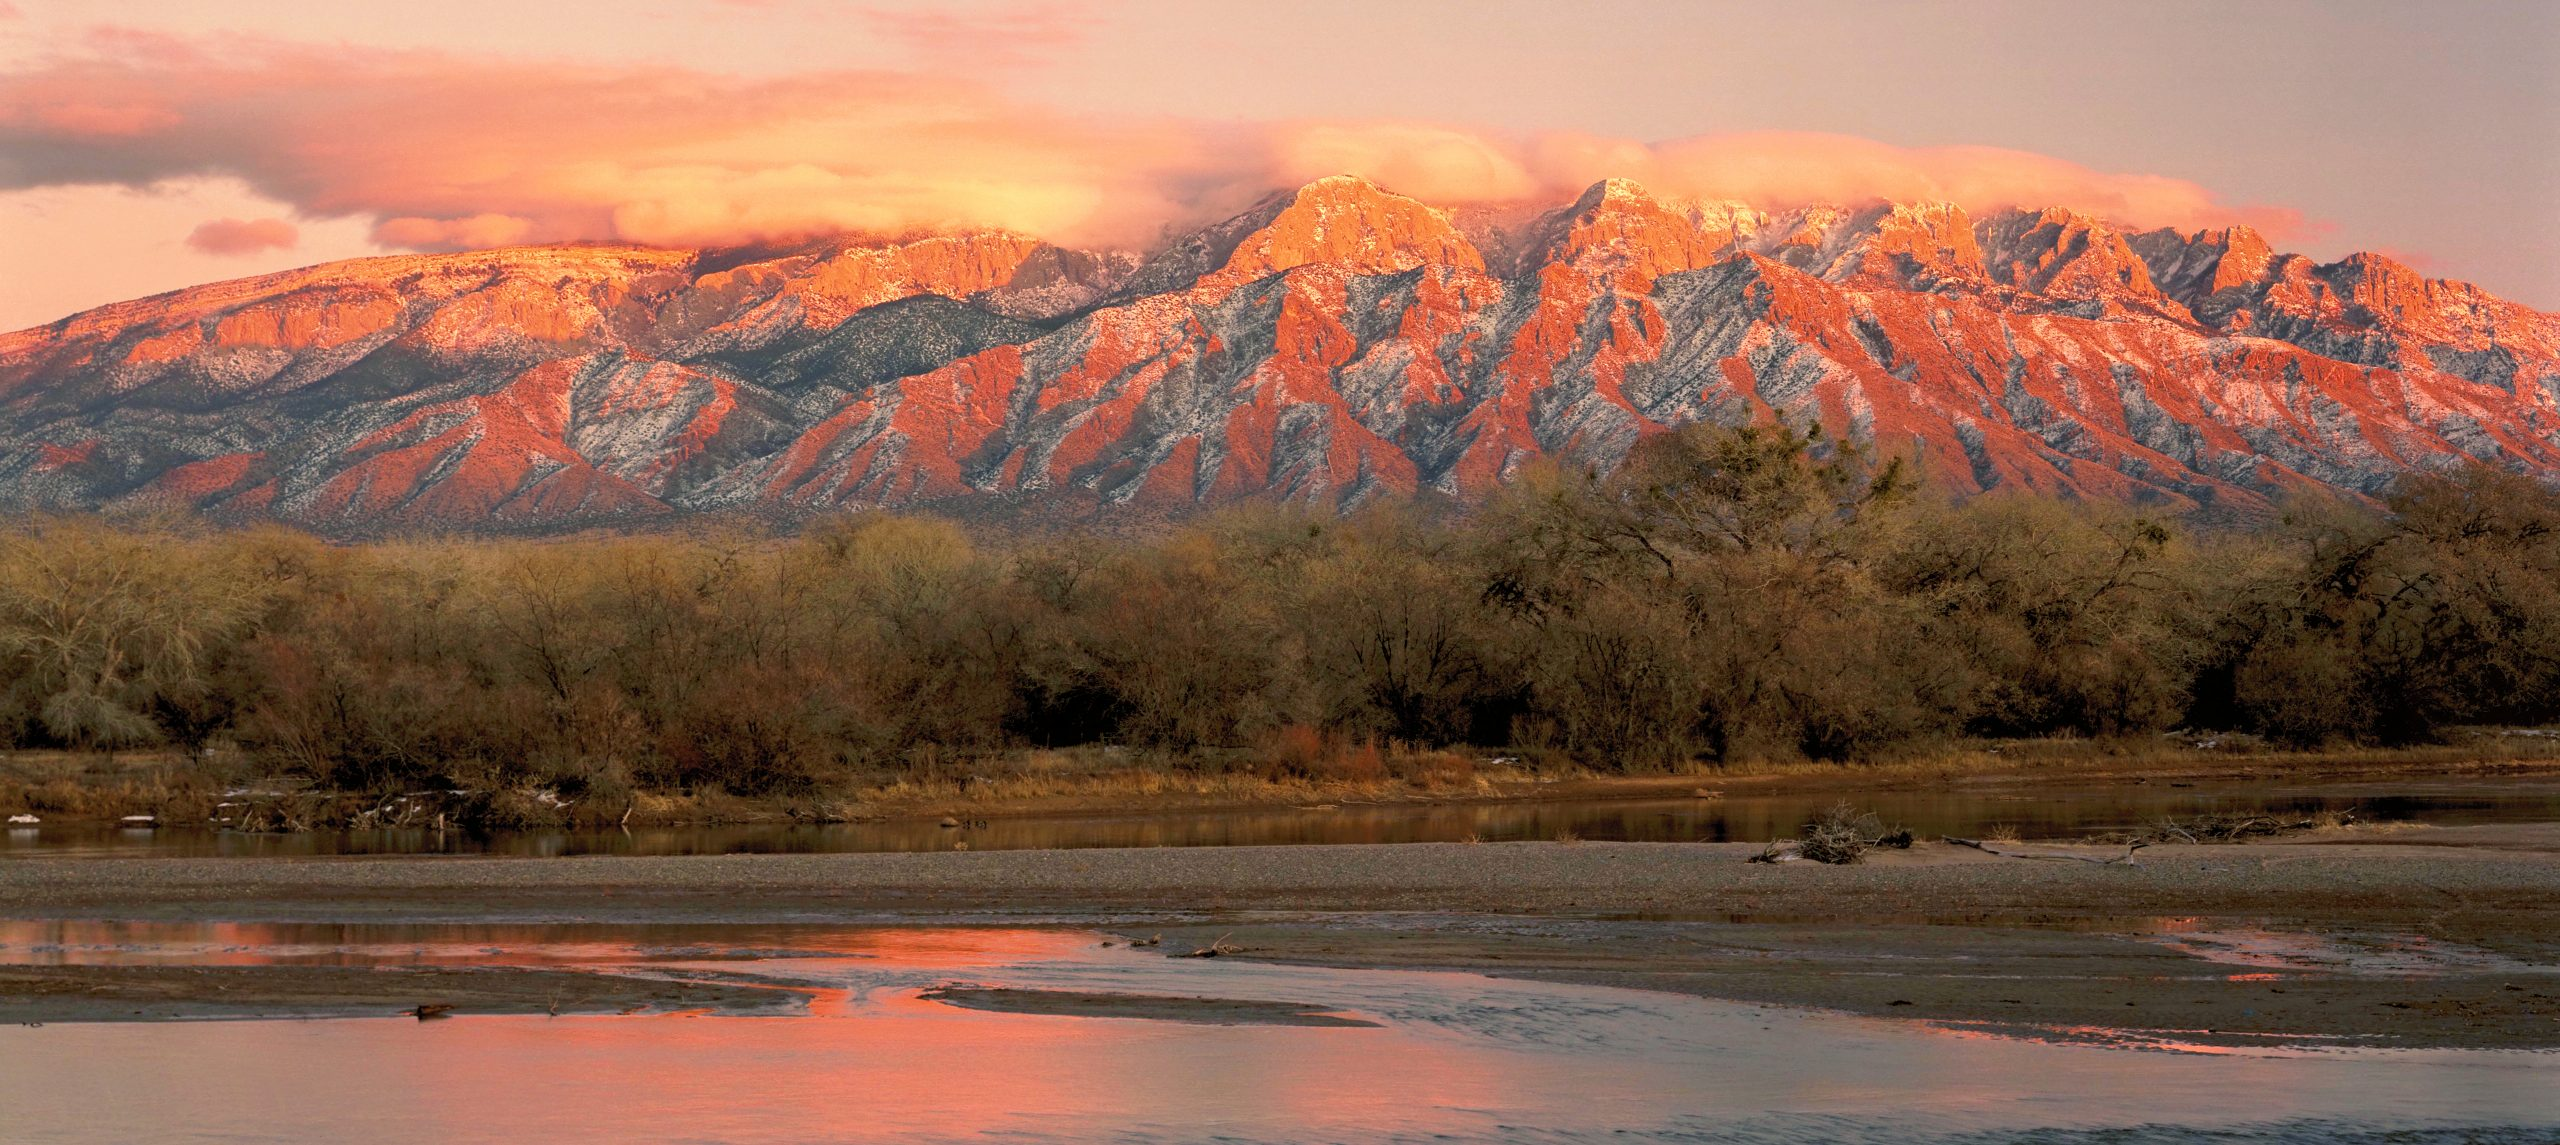 The Sandia Mountains and Rio Grande River in NM.  Their irreversibility is why tipping points are so scary.